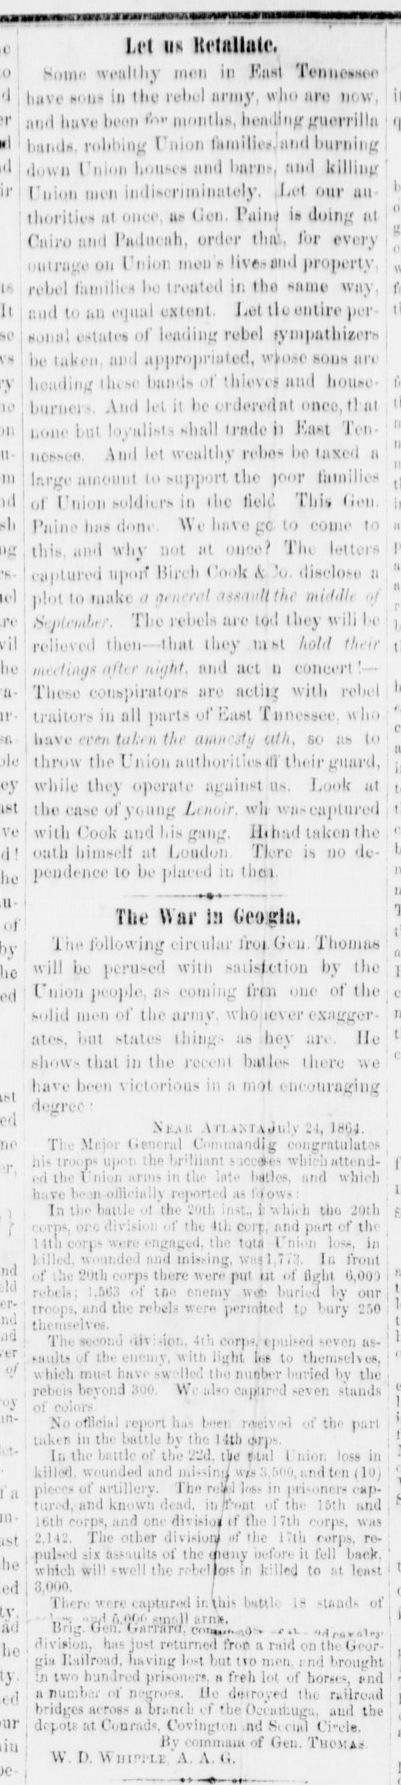 Brownlow's Knoxville Whig and Rebel Ventilatorb article 6